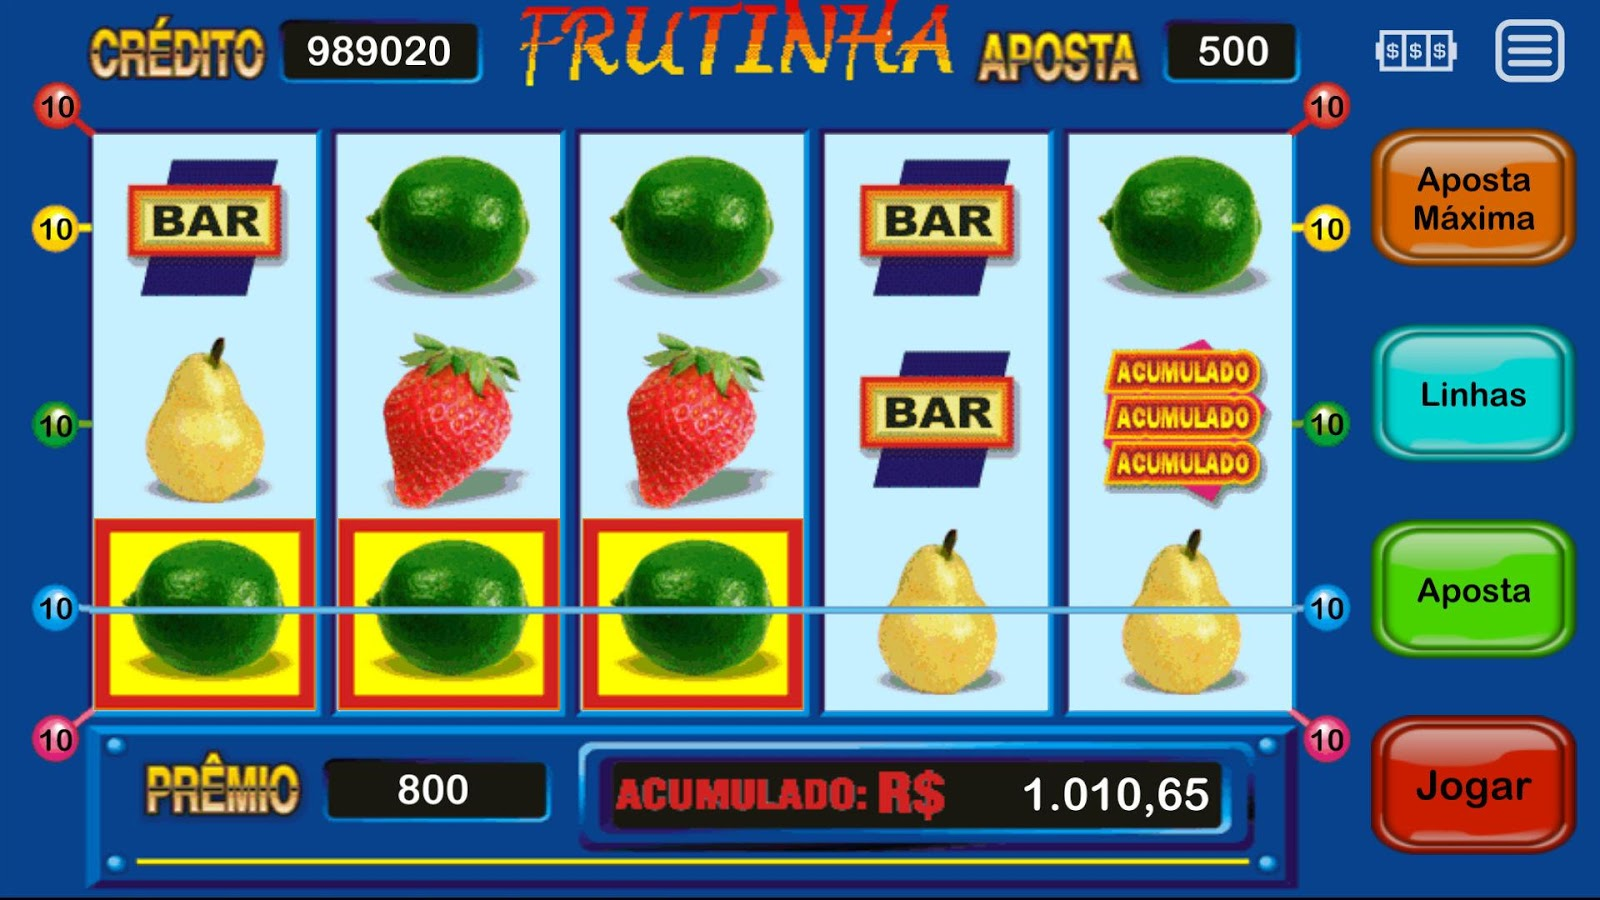 Casinos vistagaming belissimo caça níquel - 723429